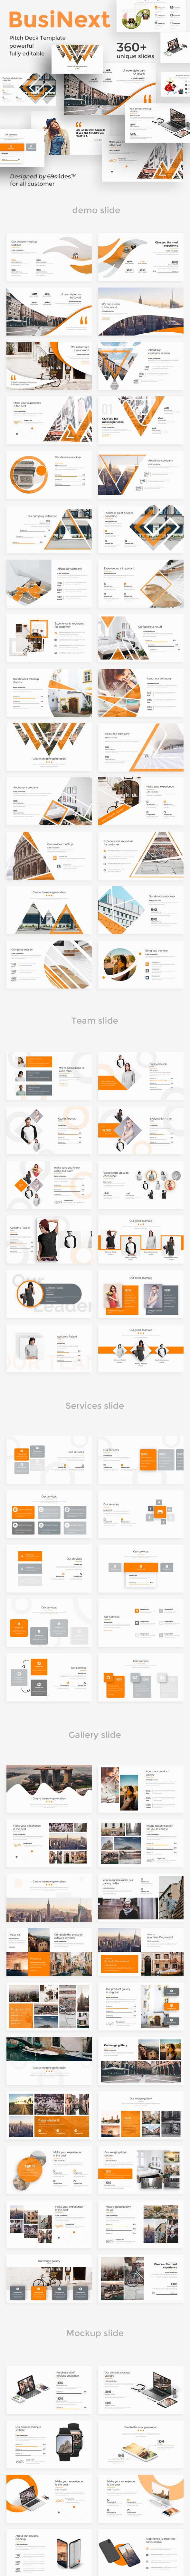 BusiNext Fully Animated Pitch Deck Powerpoint Template - Business PowerPoint Templates